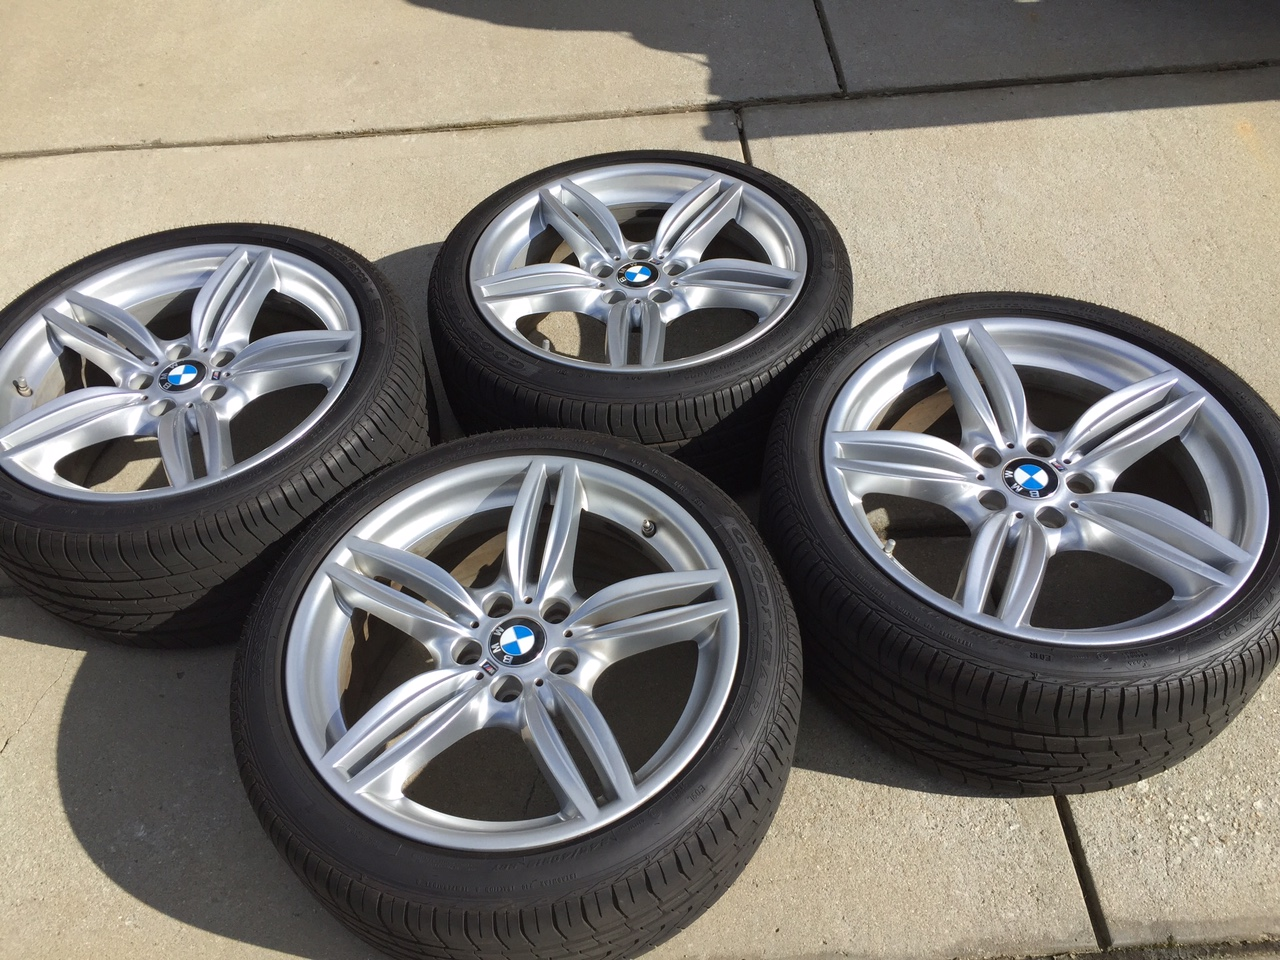 550i m sport wheels tpms and goodyear excellence run on. Black Bedroom Furniture Sets. Home Design Ideas